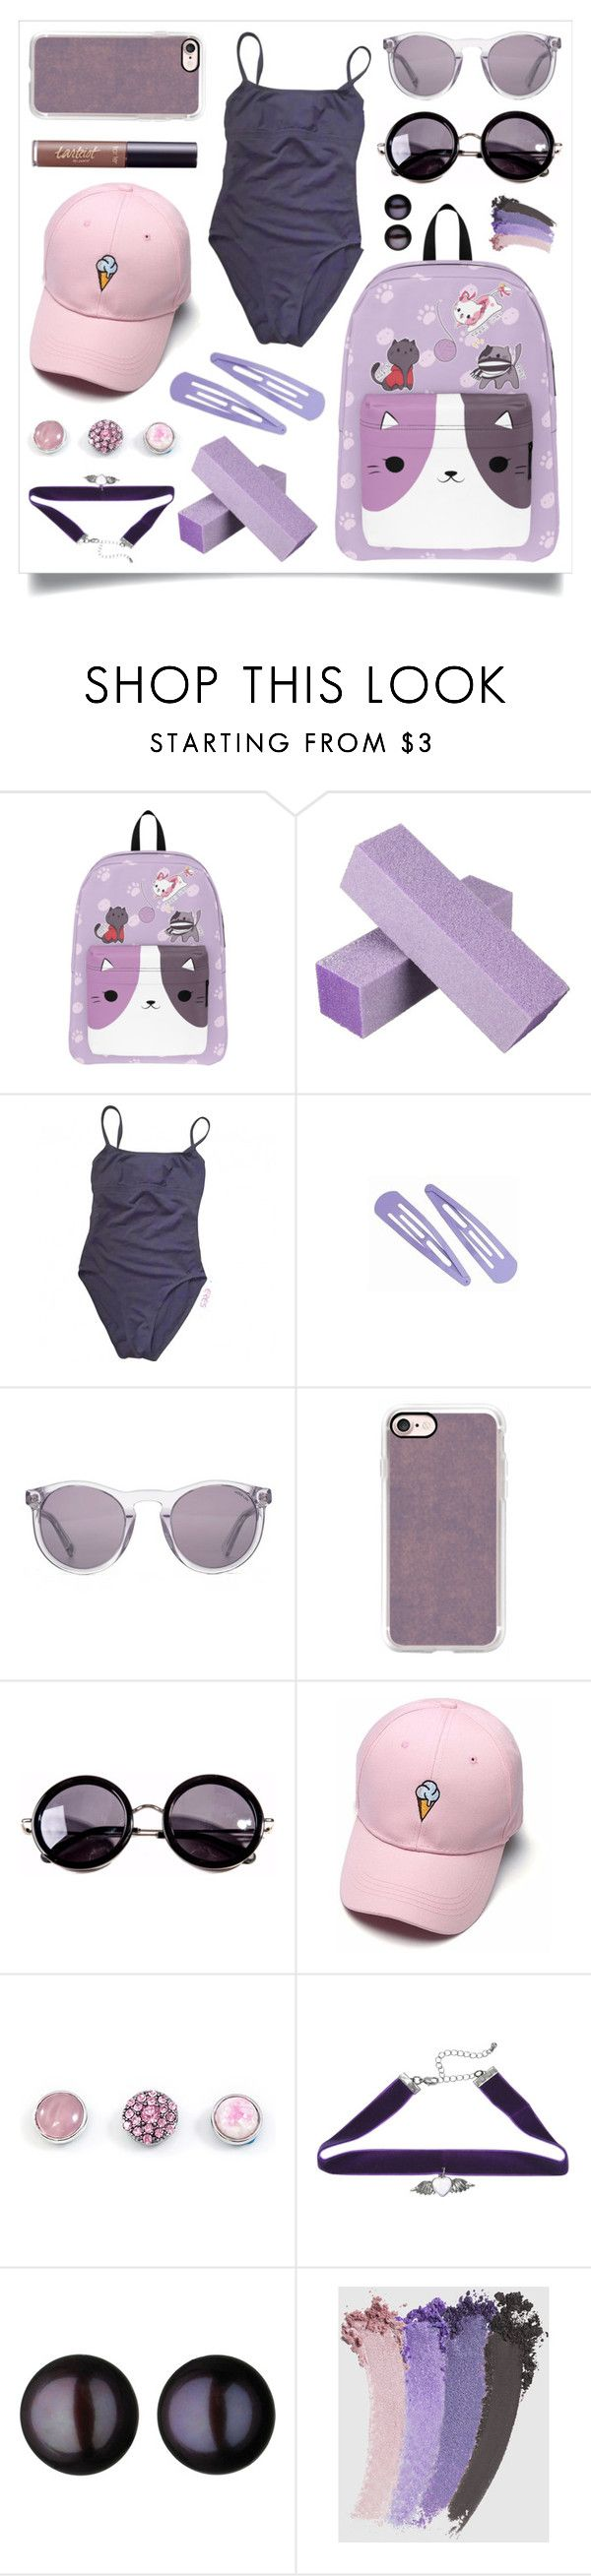 """One last relax"" by racanoki ❤ liked on Polyvore featuring Eres, HOOK LDN, Casetify, Linda Farrow, Links of London, Gucci, tarte and RaCaNoKi"